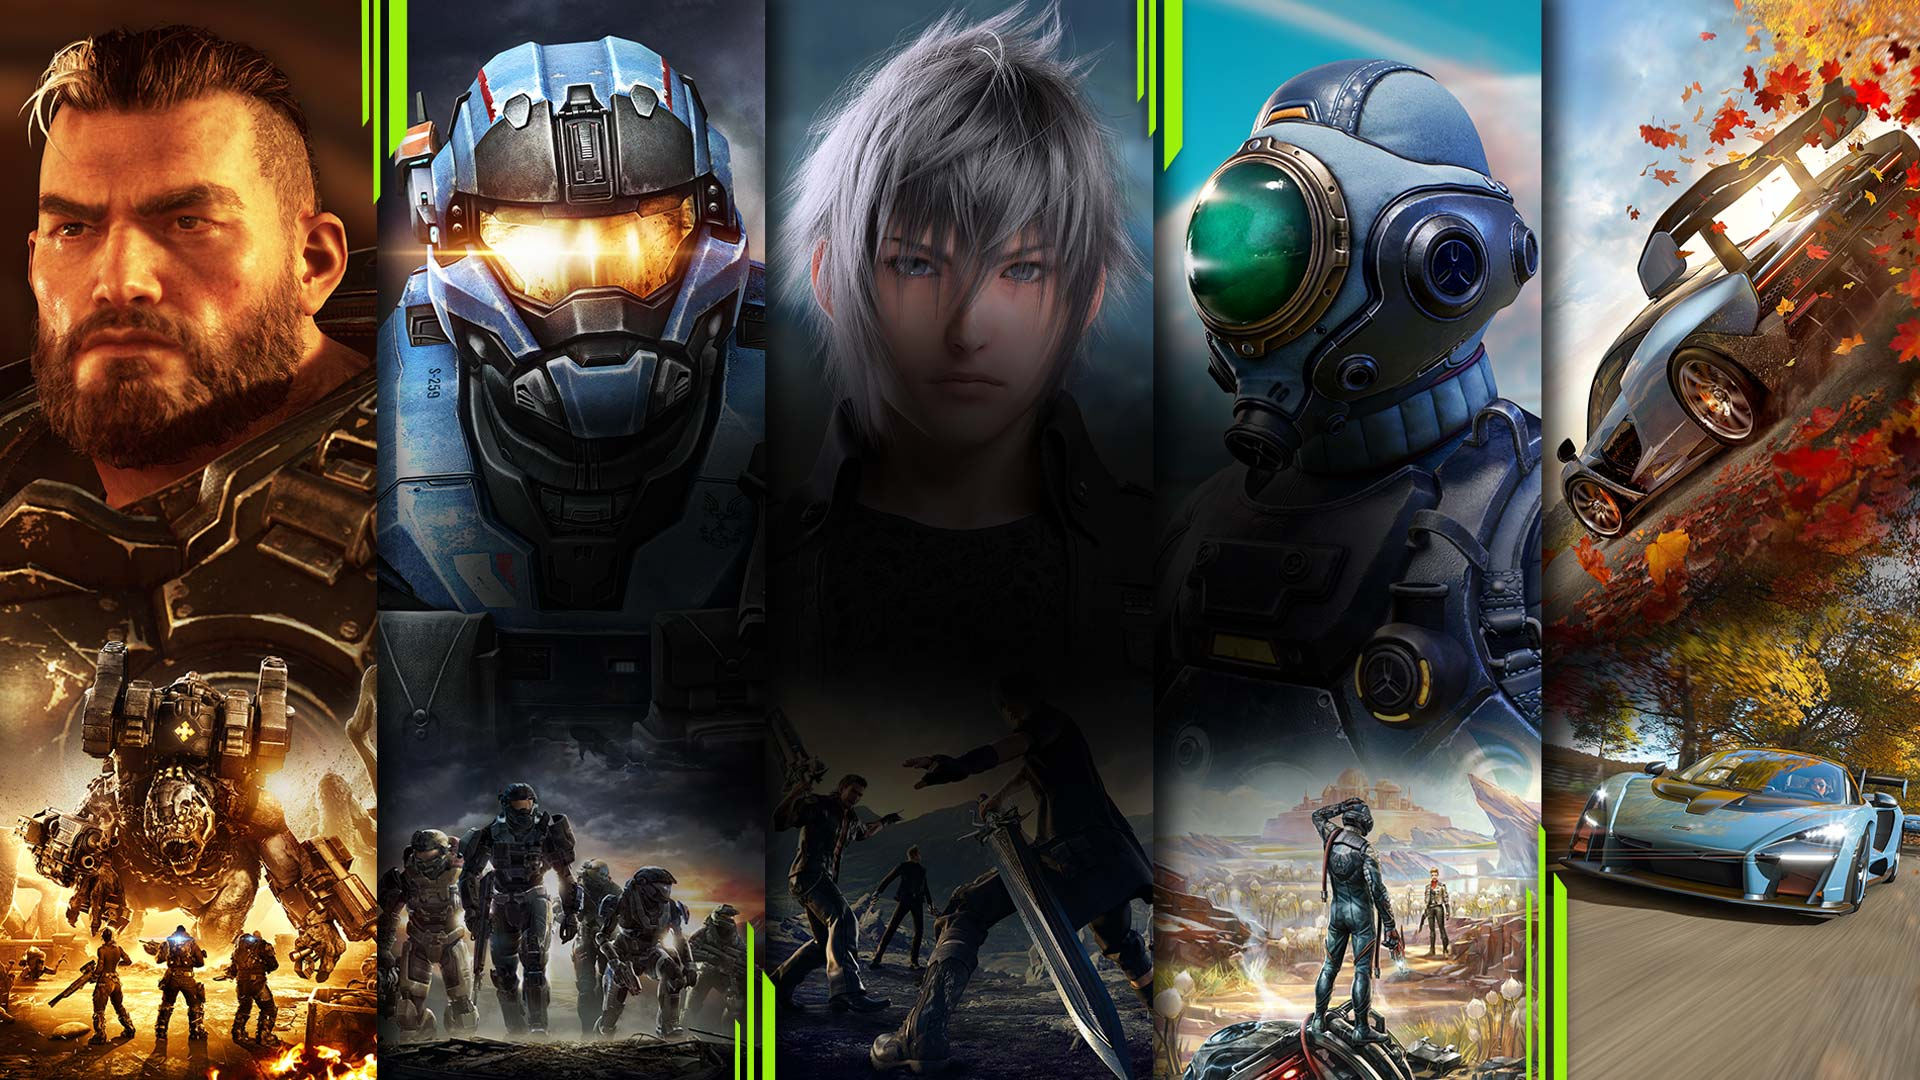 Un montaje de juegos disponibles en Xbox Game Pass para PC, entre los que se encuentran Gears of War, Halo, Final Fantasy, The Outer Worlds y Forza.